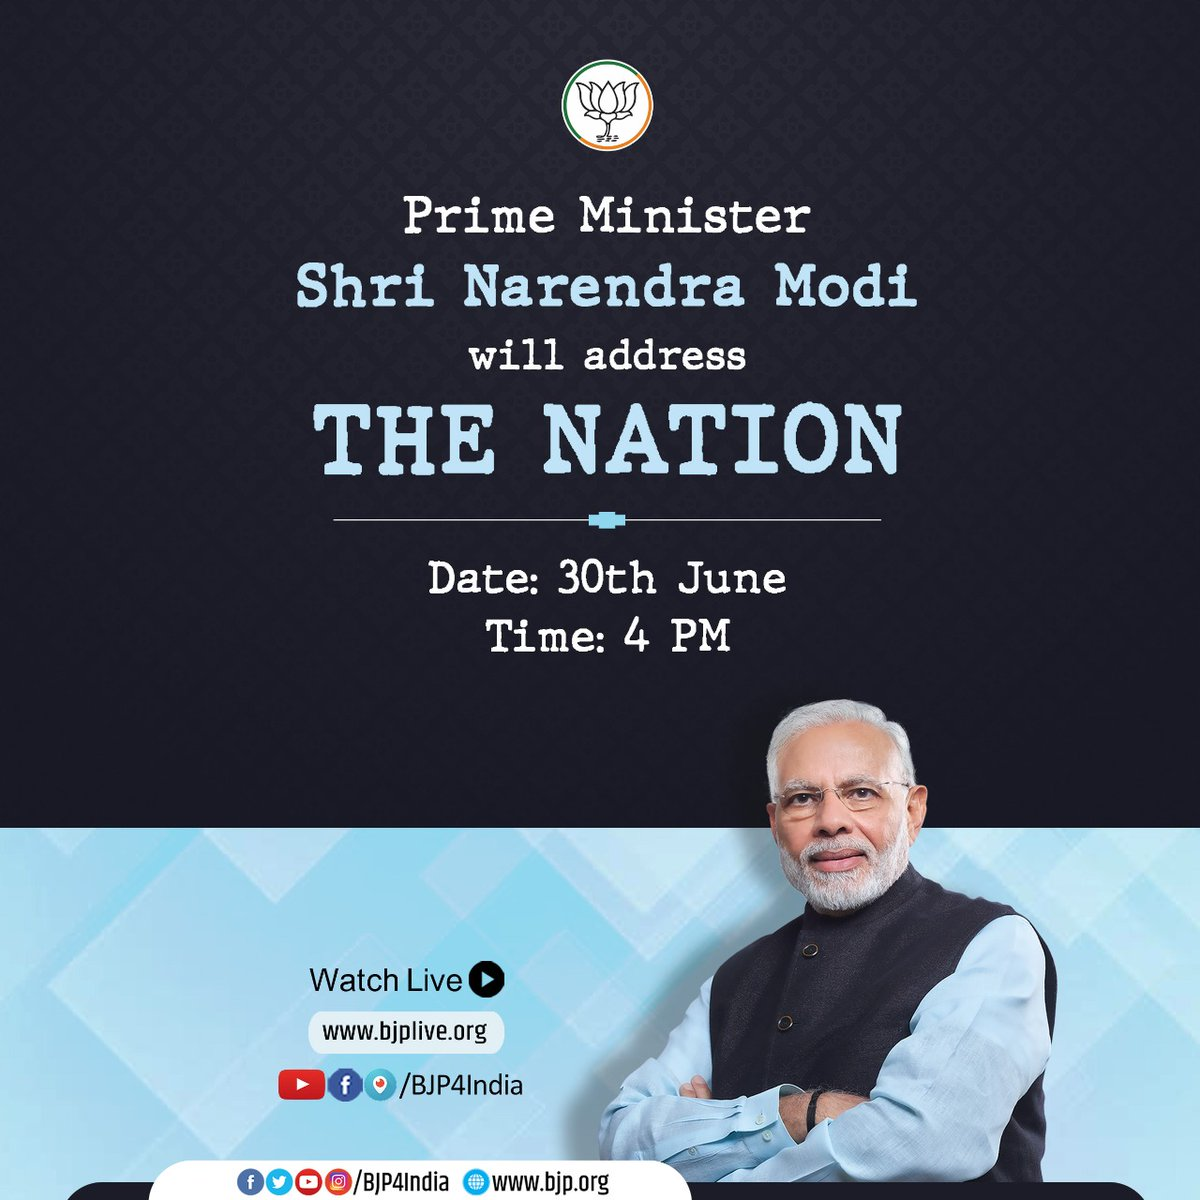 Prime Minister Shri @narendramodi will address the nation today at 4 pm. Watch LIVE at • facebook.com/BJP4India • pscp.tv/BJP4India • youtube.com/BJP4India • bjplive.org